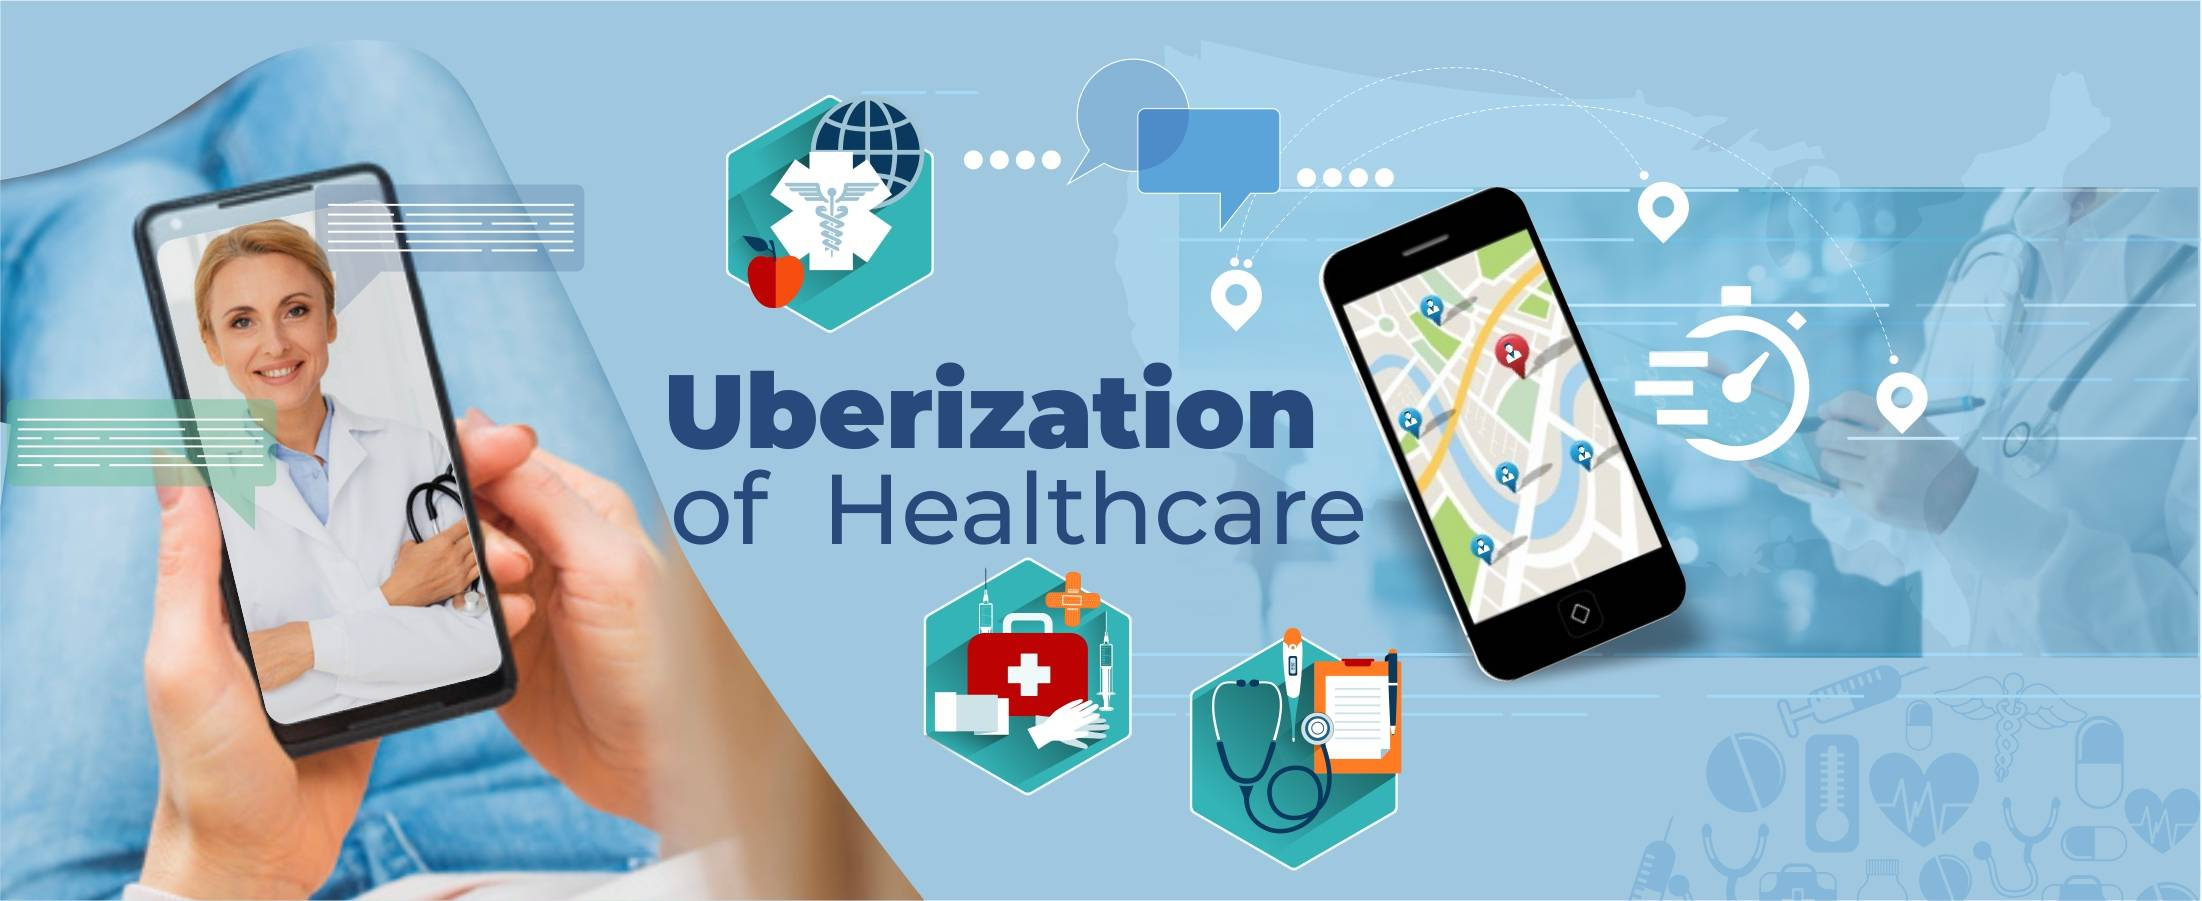 Uberization of Healthcare